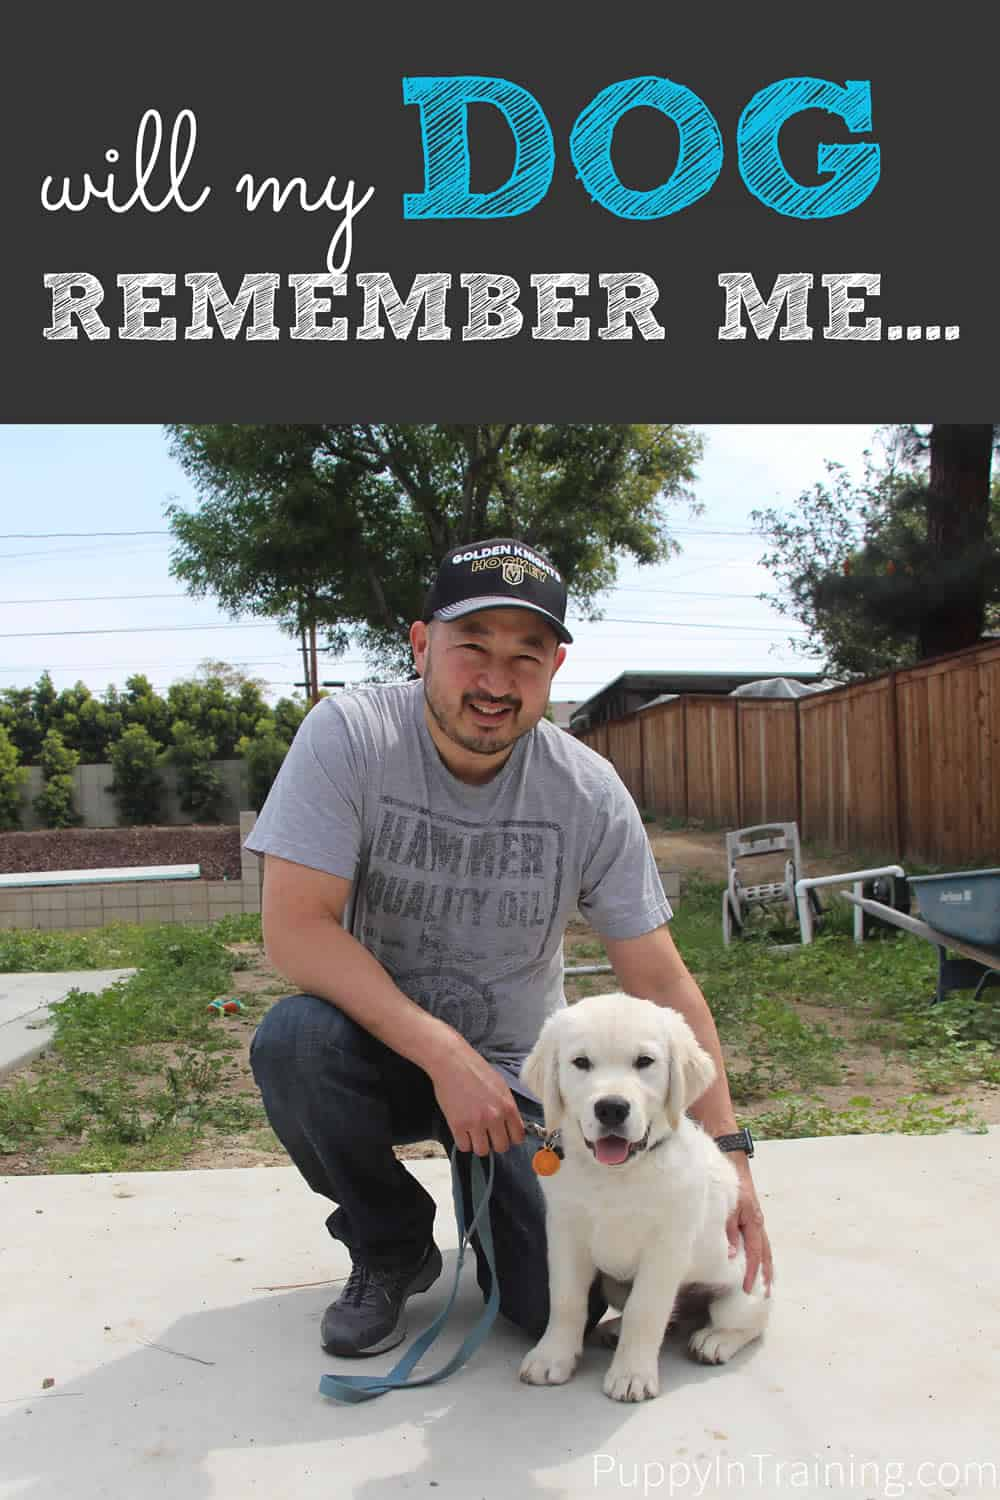 Have you ever been separated from your dog for weeks, months, or years? Did he remember you?